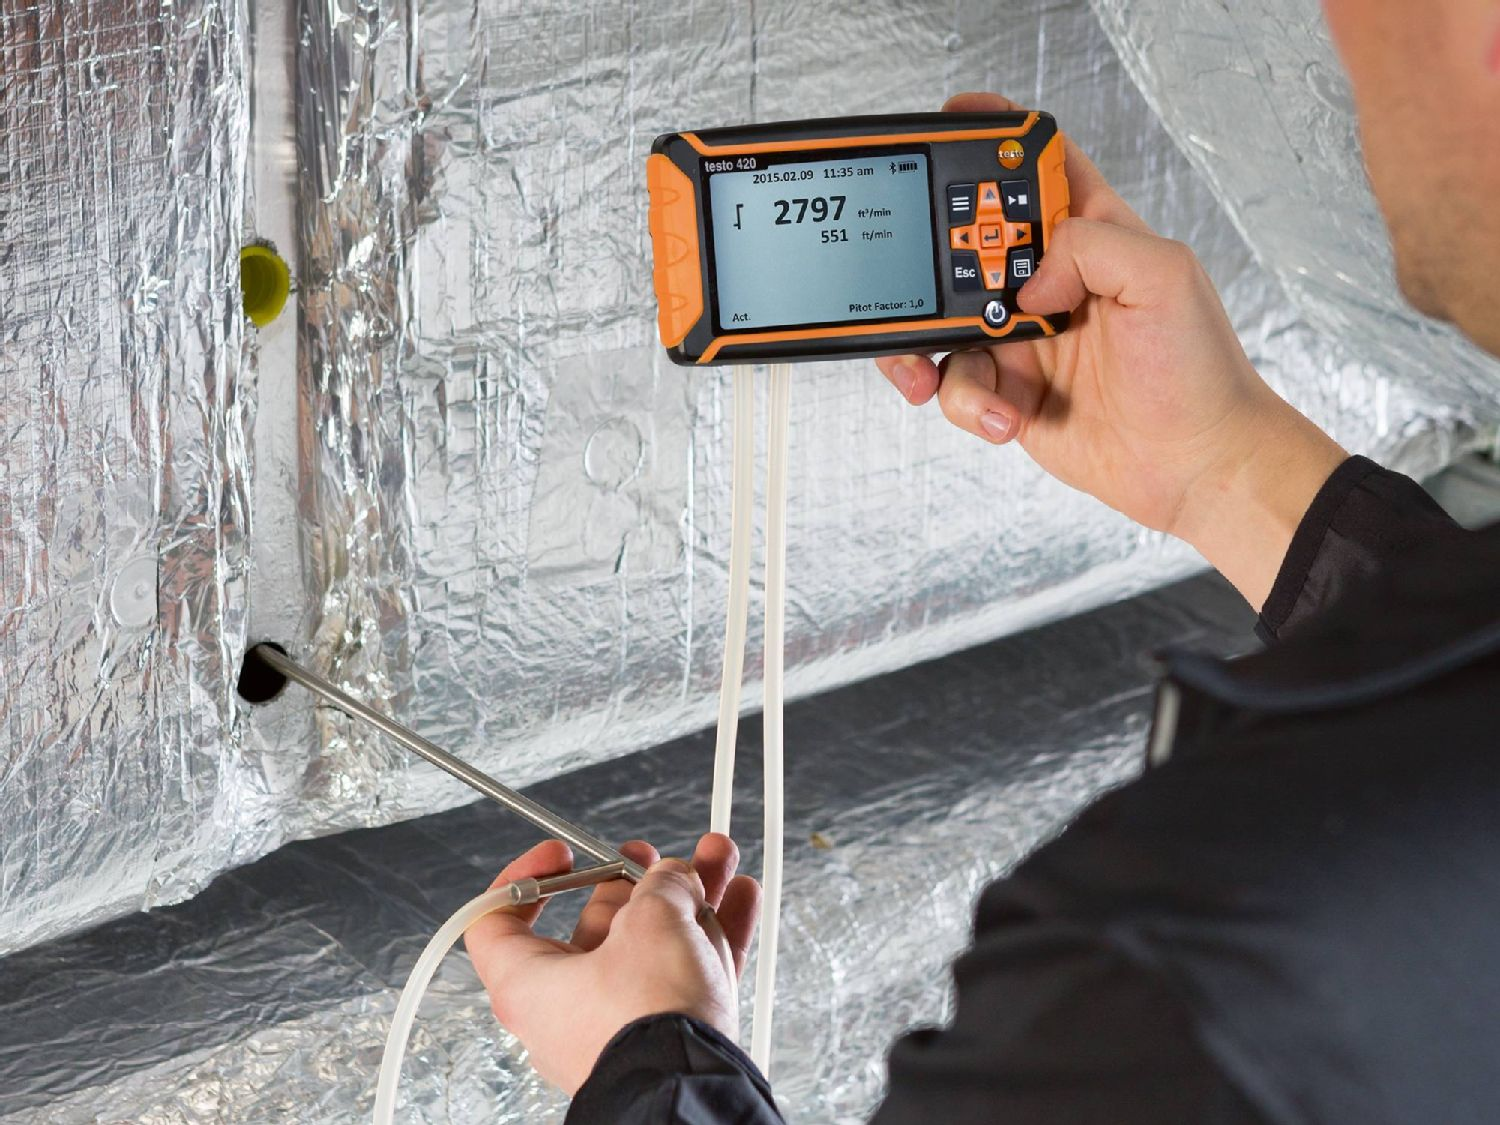 Testo's differential pressure measuring device